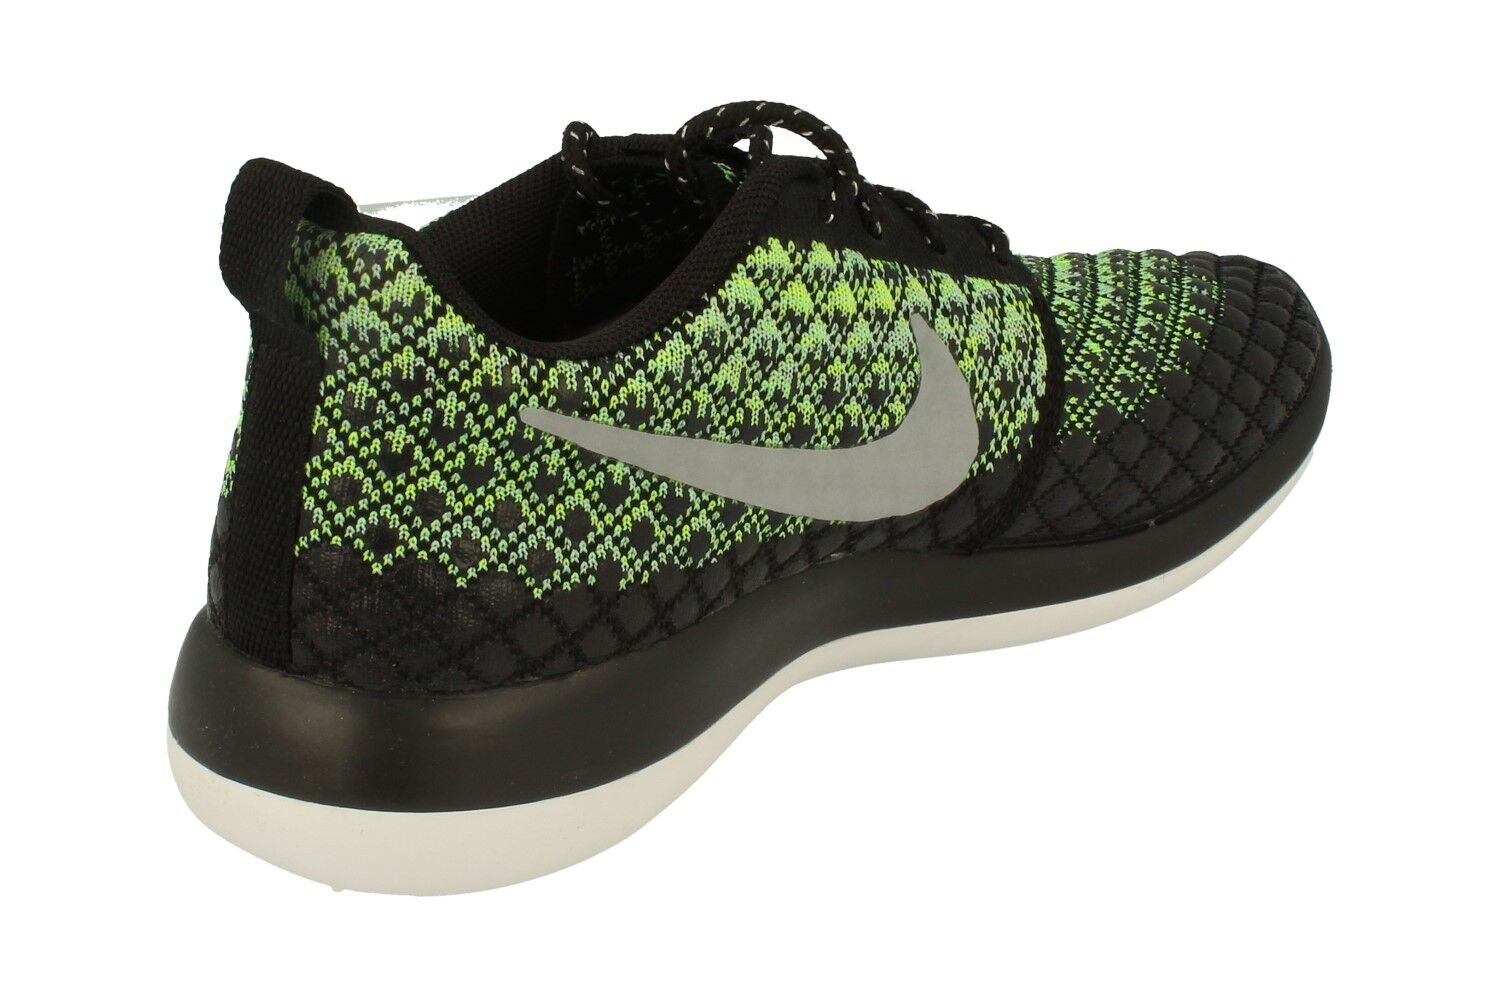 Nike Roshe Two Flyknit 365  Uomo Running Trainers Trainers Trainers 859535 Sneakers Schuhes 700 3e33ad